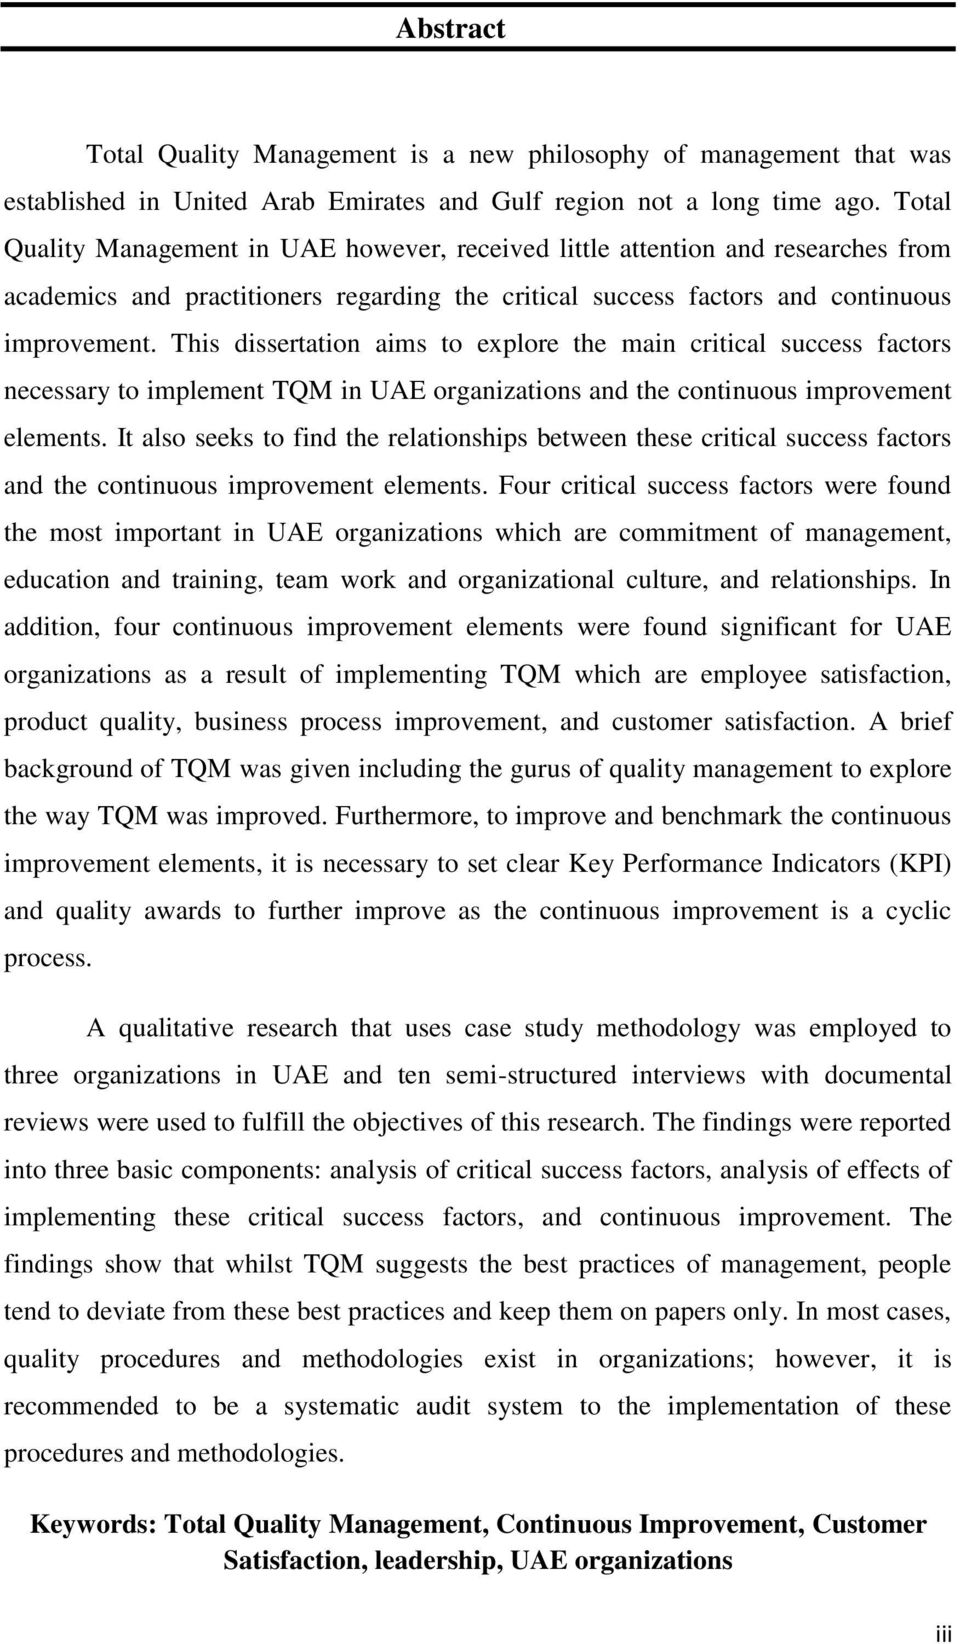 This dissertation aims to explore the main critical success factors necessary to implement TQM in UAE organizations and the continuous improvement elements.